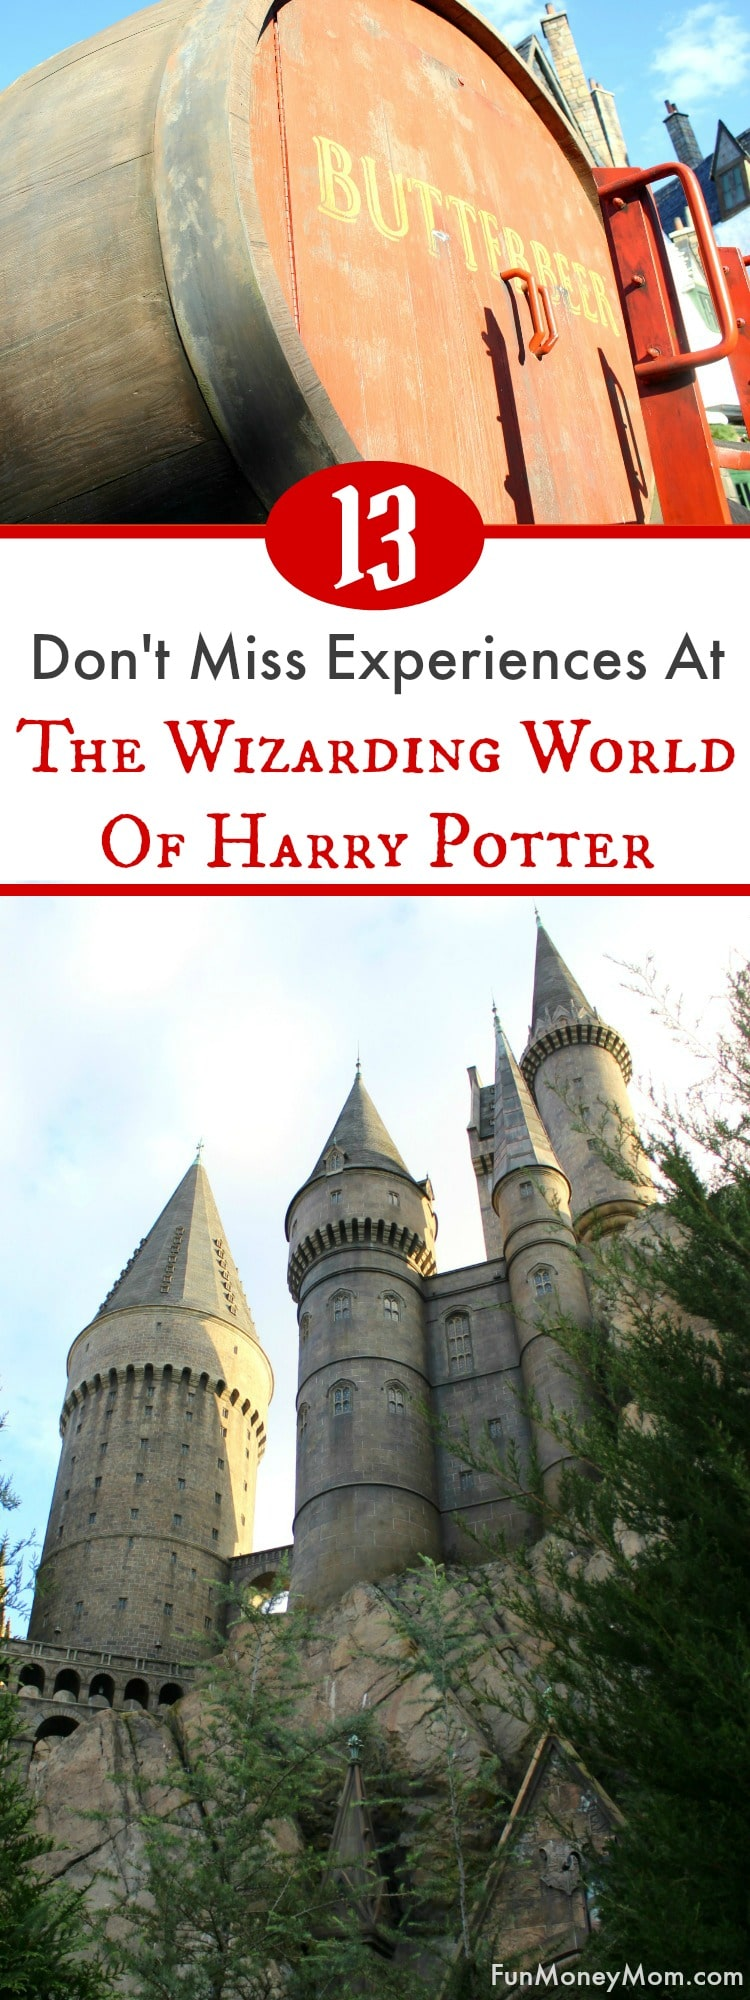 Heading to The Wizarding World Of Harry Potter at Universal Orlando Resort? Harry Potter fans won't want to miss these awesome experiences at Hogsmeade and Diagon Alley. Make your way from Islands Of Adventure to Universal Studios Orlando and feel like you've been transported into the Harry Potter books and movies! #UniversalPartner